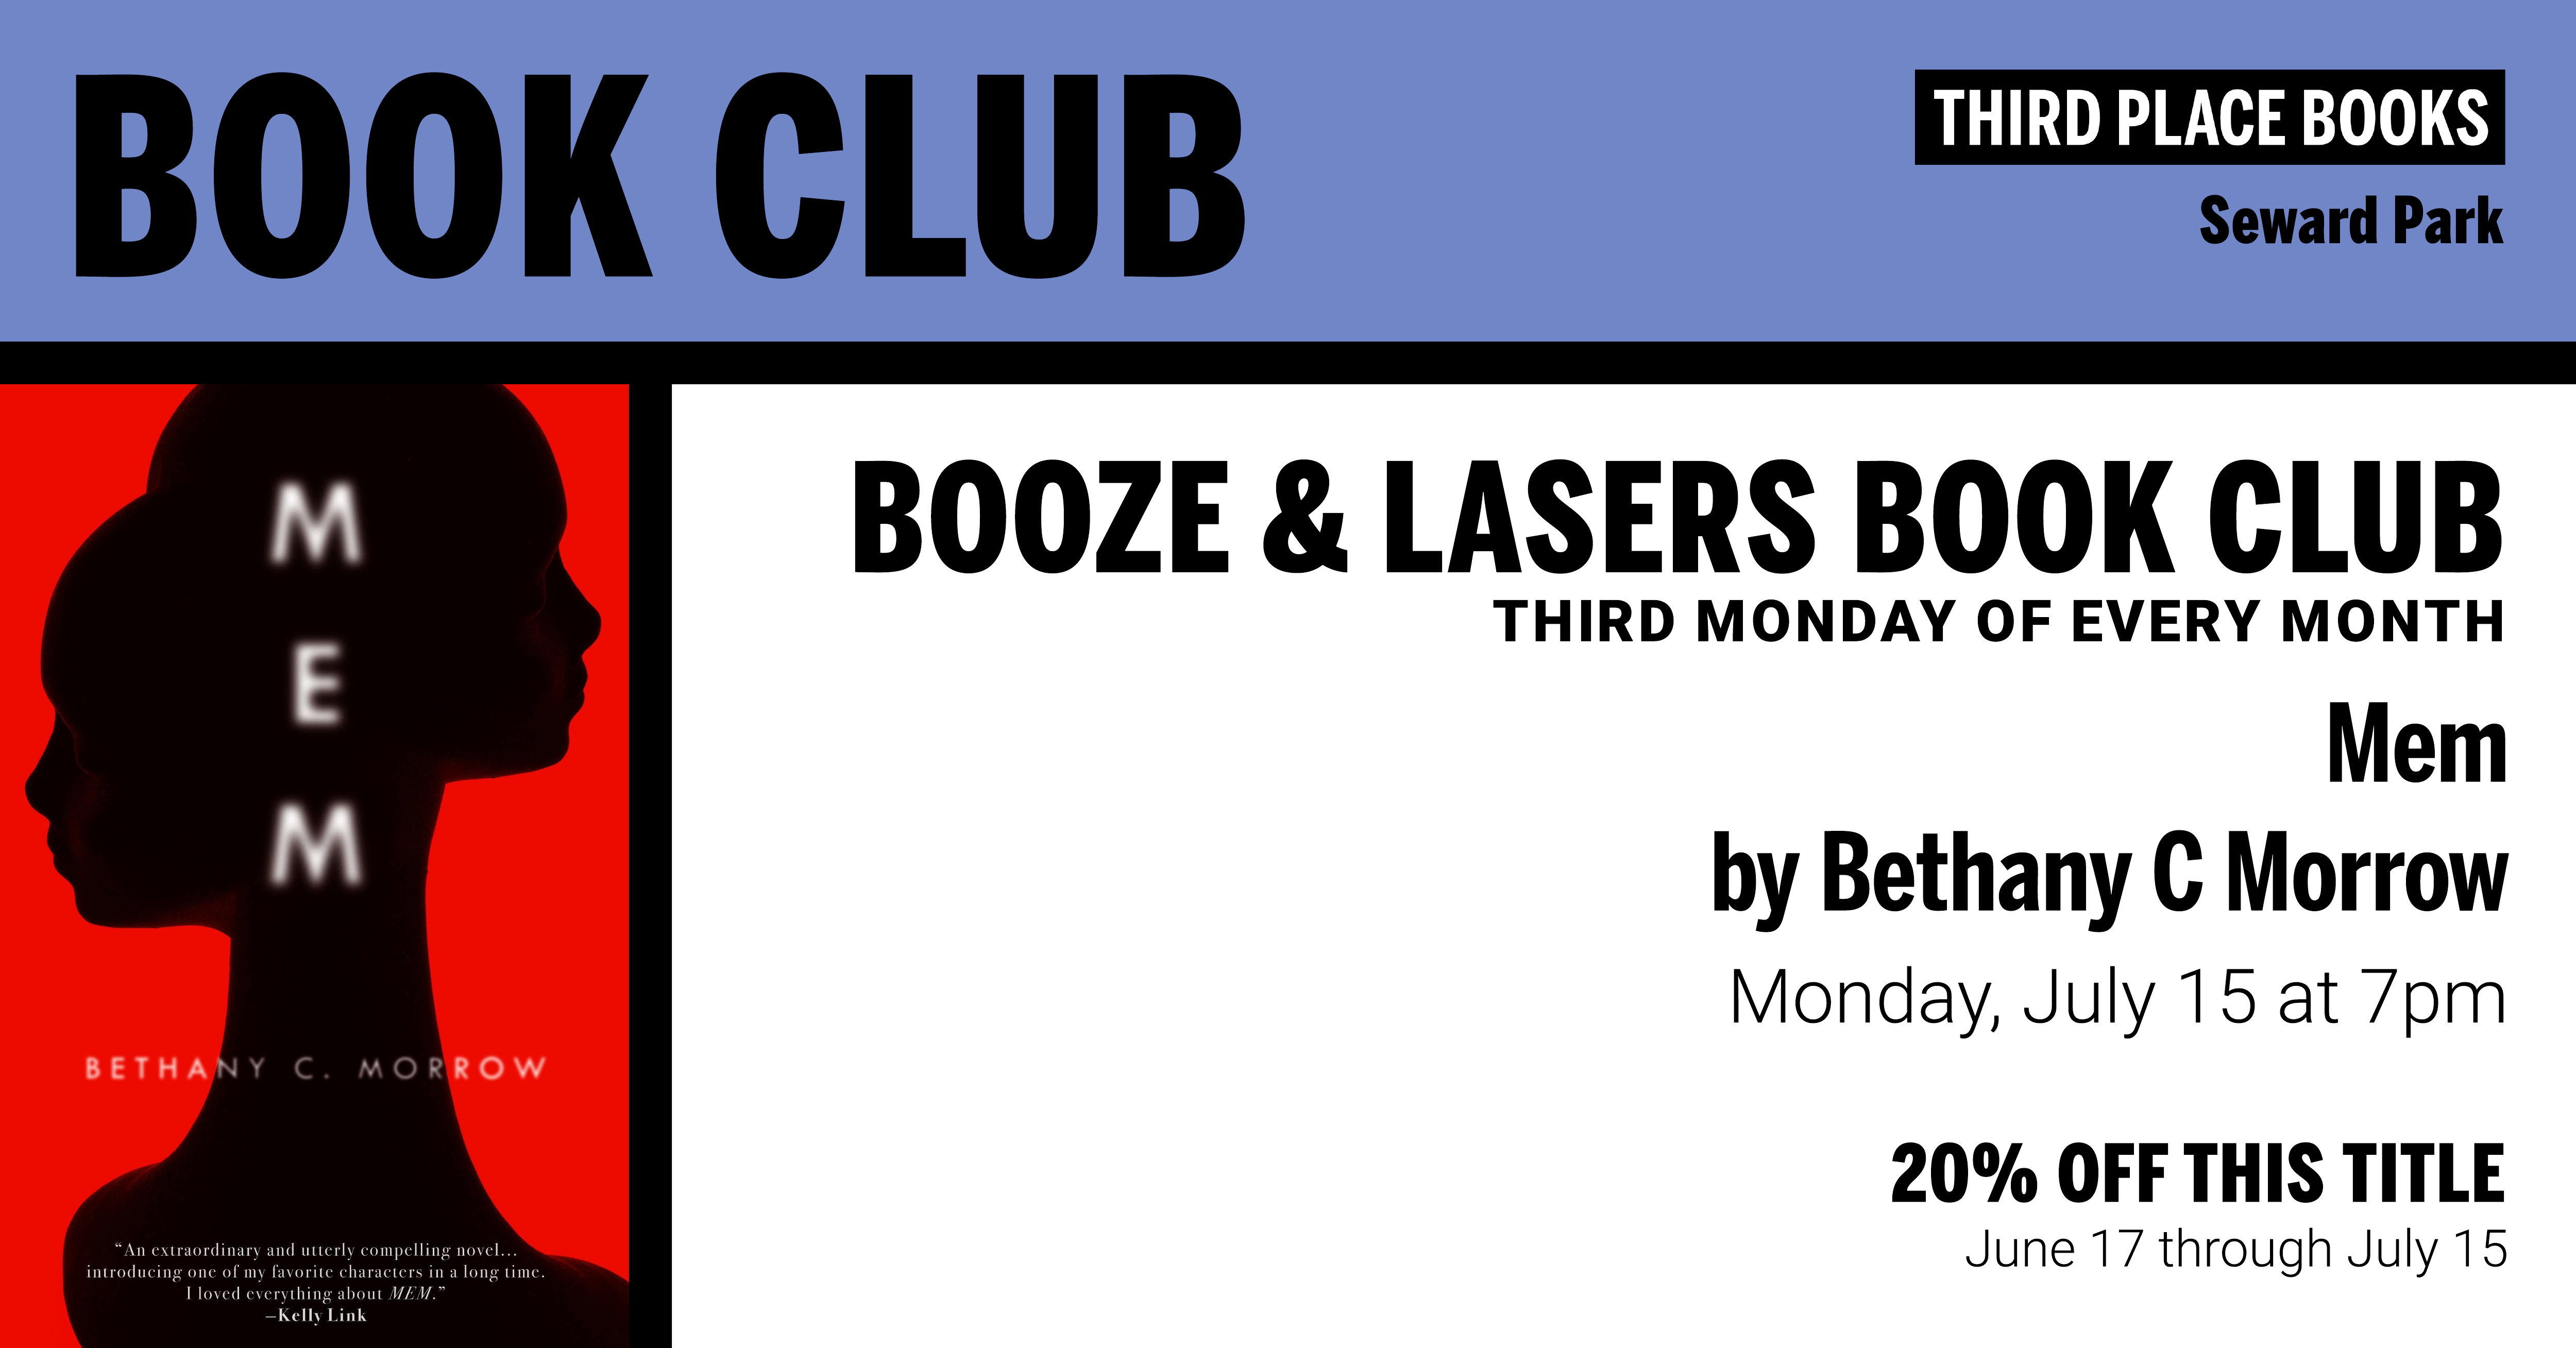 Booze & Lasers Book Club discussing Mem by Bethany C. Morrow on Monday, July 15 at 7pm